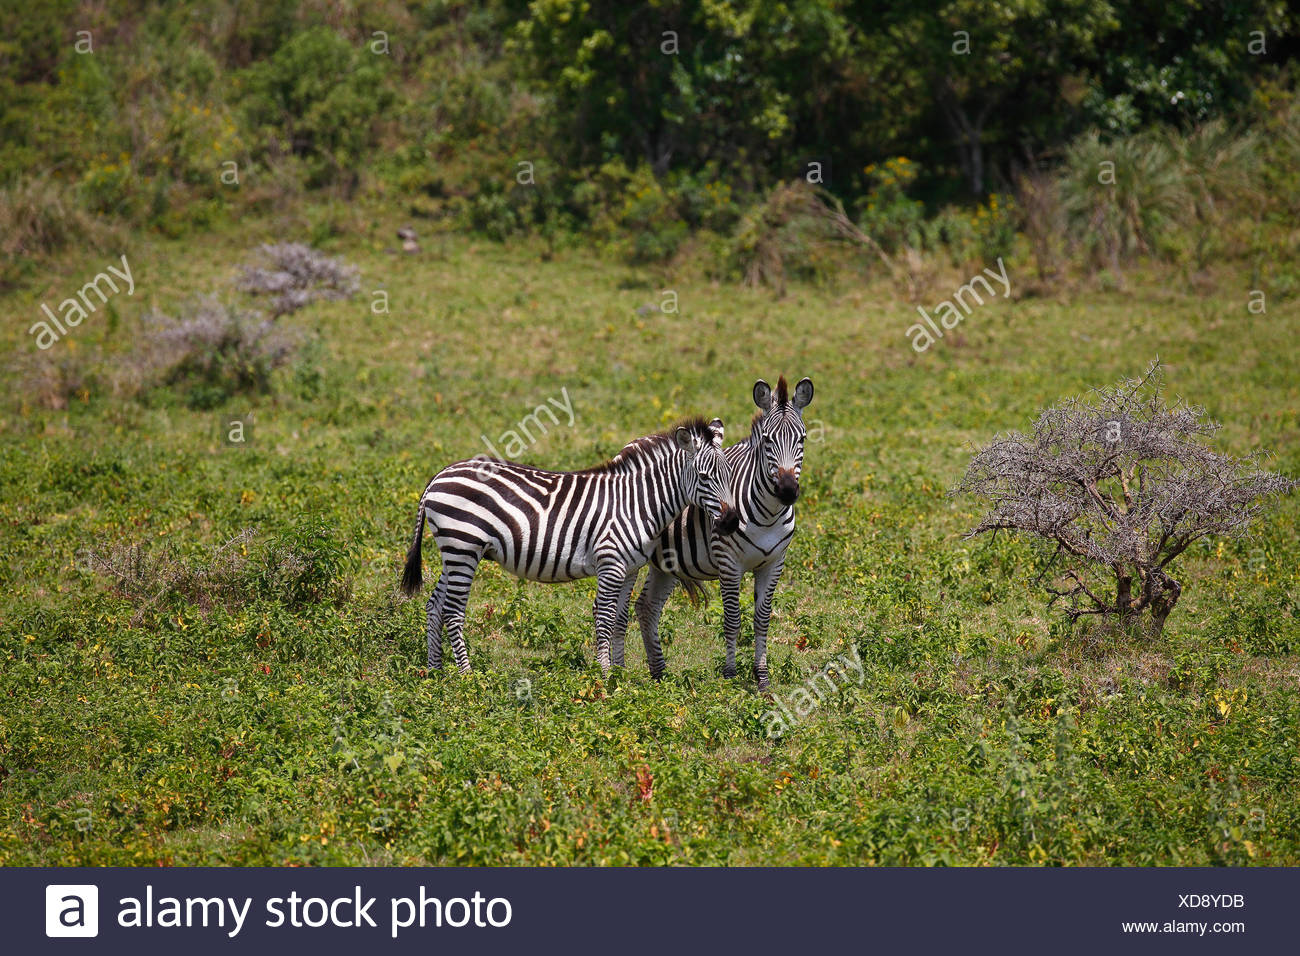 Two zebras (Equus quagga) among the bush, Arusha National Park, Tanzania - Stock Image